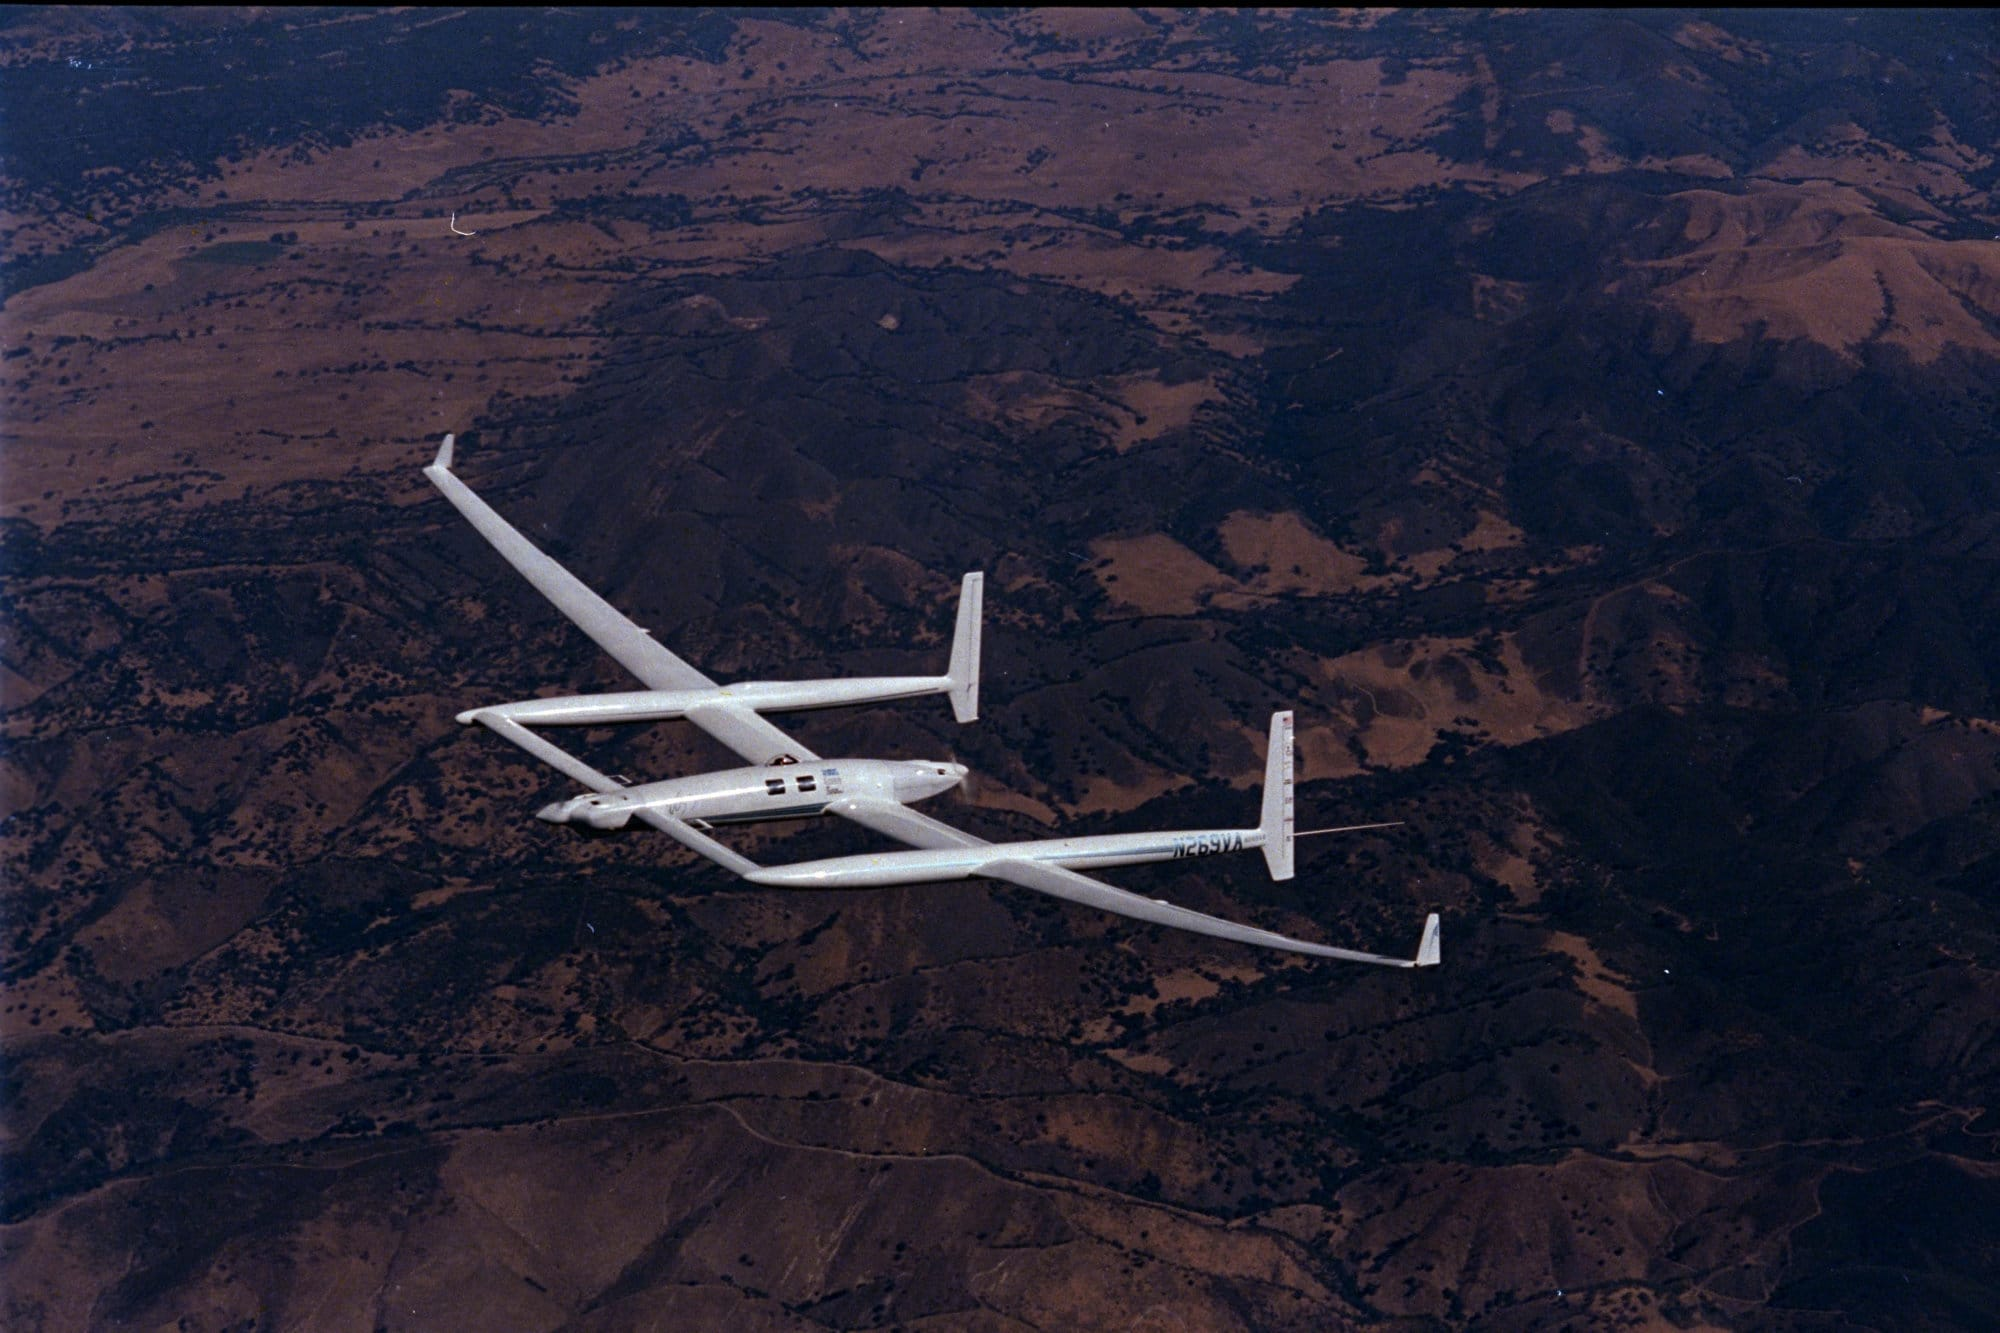 This is a December 5, 1986 photo of the twin-engine, pusher-puller experimental aircraft named Voyager during a training flight before her historic first non-stop, un-refueled flight around the world.  The plane took off from Edwards Air Force Base, Calif., Dec. 14, 1986 with 1,200 gallons of fuel onboard and returned to the desert base nine days later on Dec. 23 with 18 gallons to spare. (AP Photo/Douglas C. Pizac)